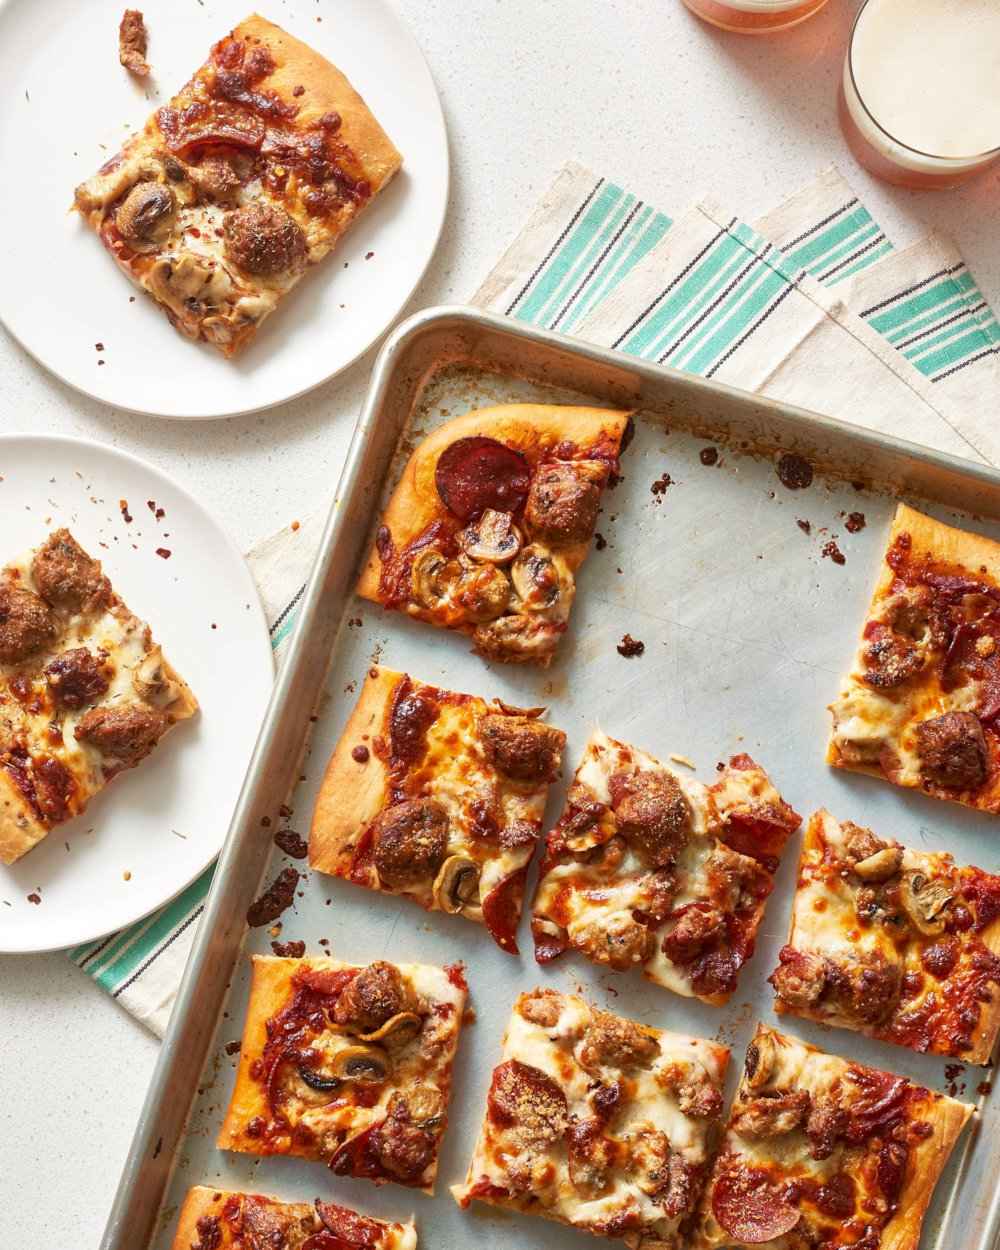 How To Make Classic Sheet Pan Pizza